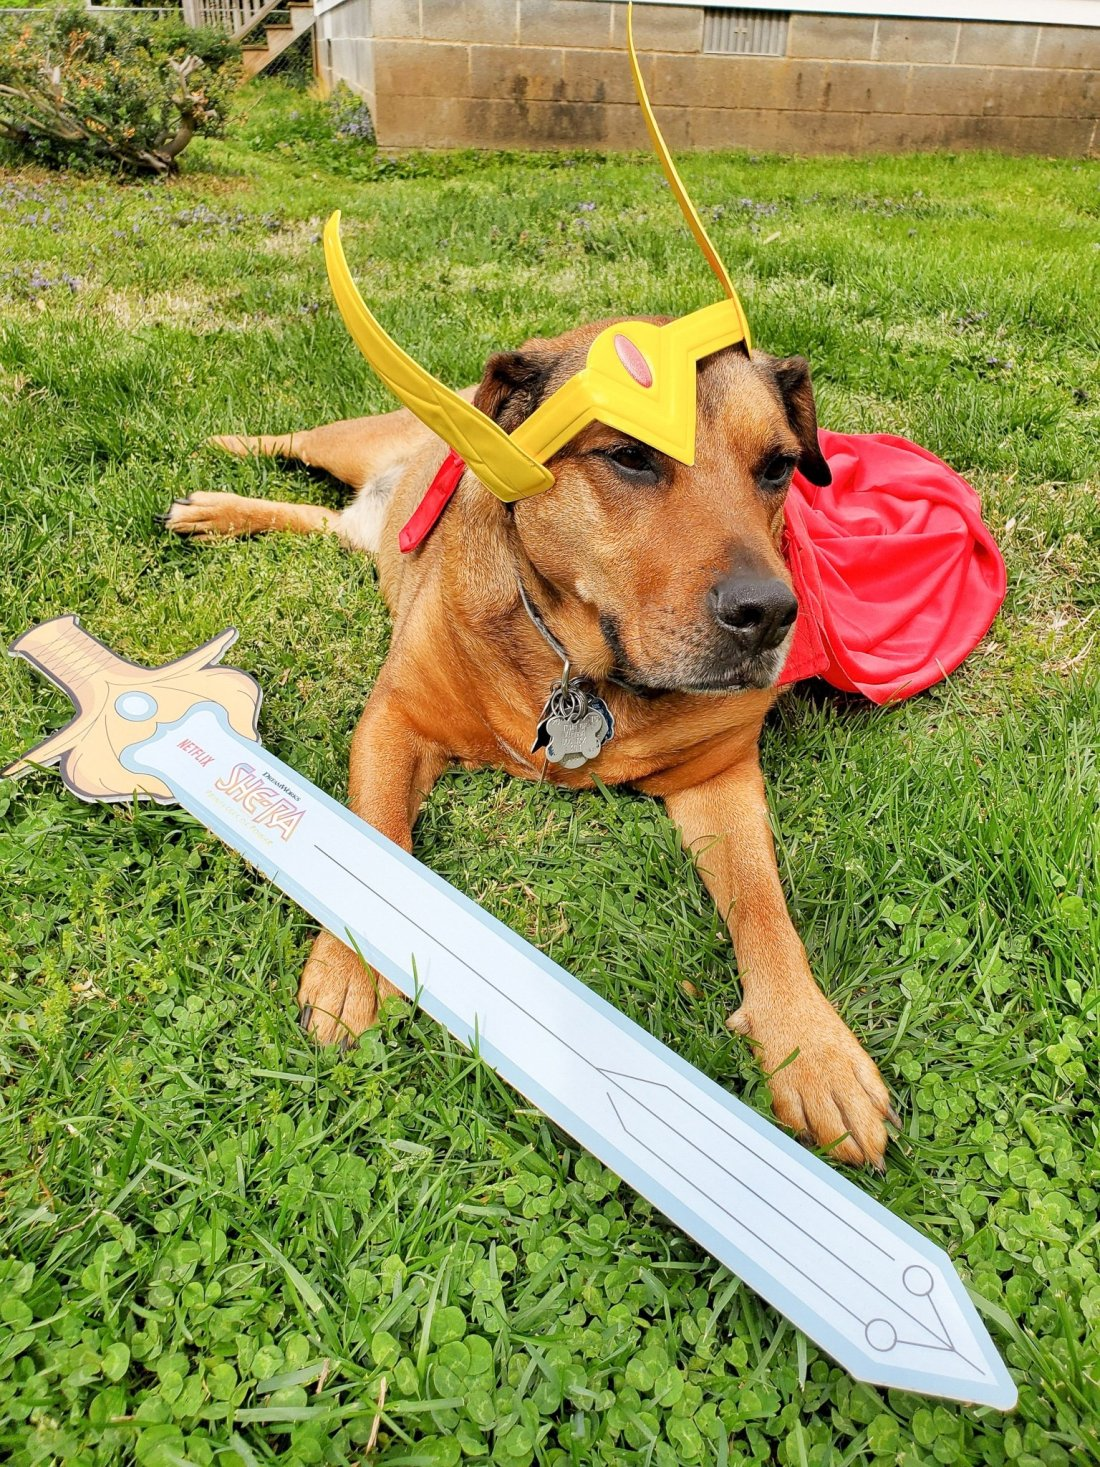 Beau in She Ra Costume. Mark your calendars because on April 26th DreamWorks She-Ra and the Princesses of Power is roaring back to Netflix for the Honor of Grayskull. The series creator promises there will be cool new characters and story lines that didn't make it into the first season of She-Ra.